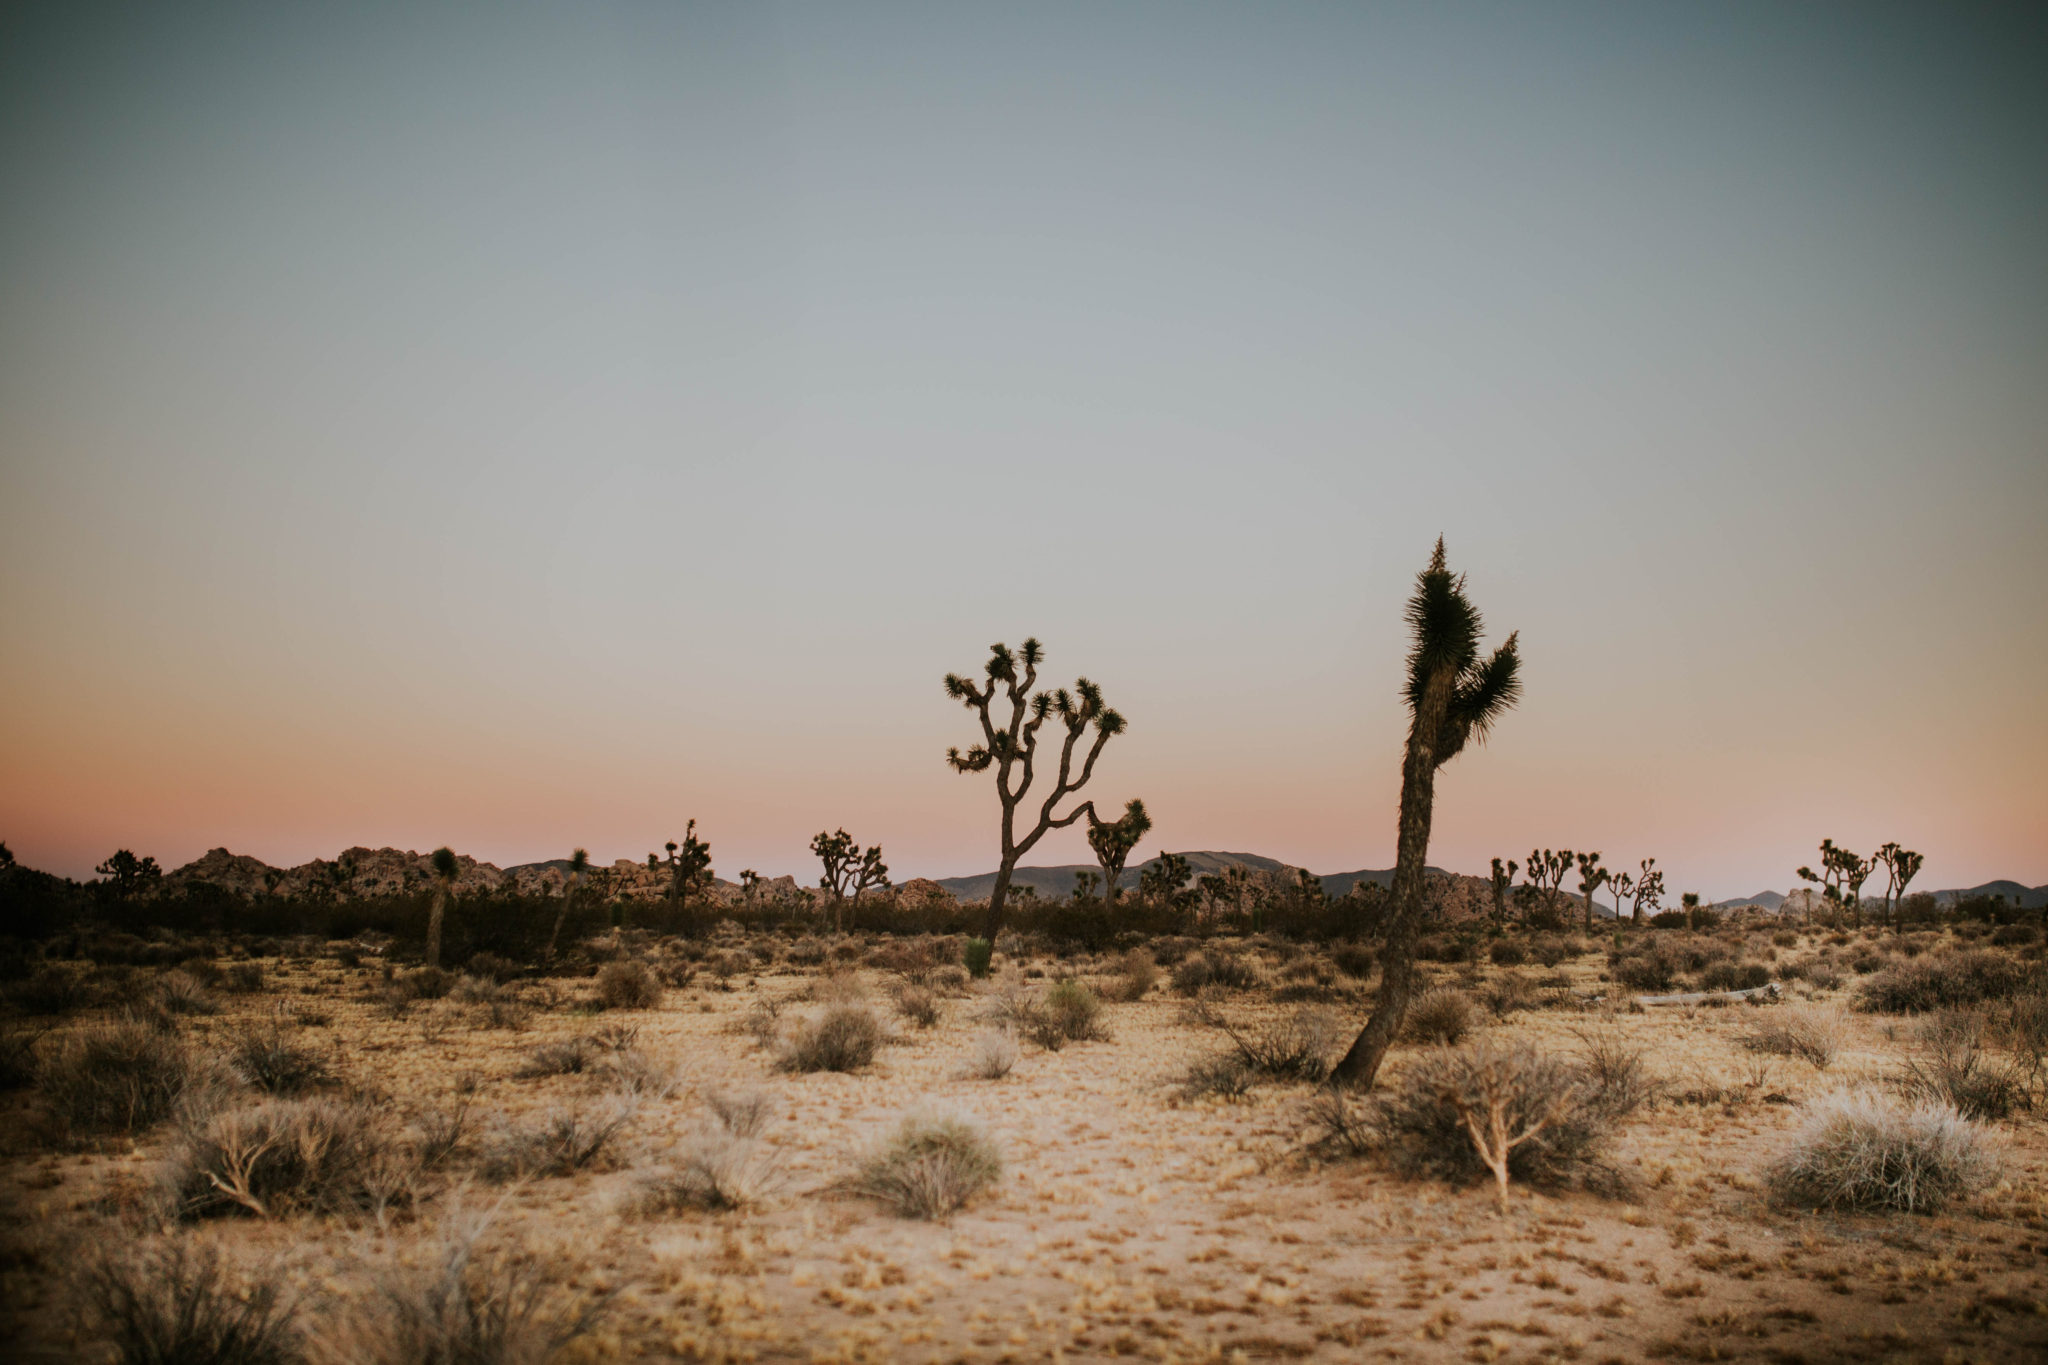 Mandy & Joey Joshua Tree Elopement California Wedding Photographer-297